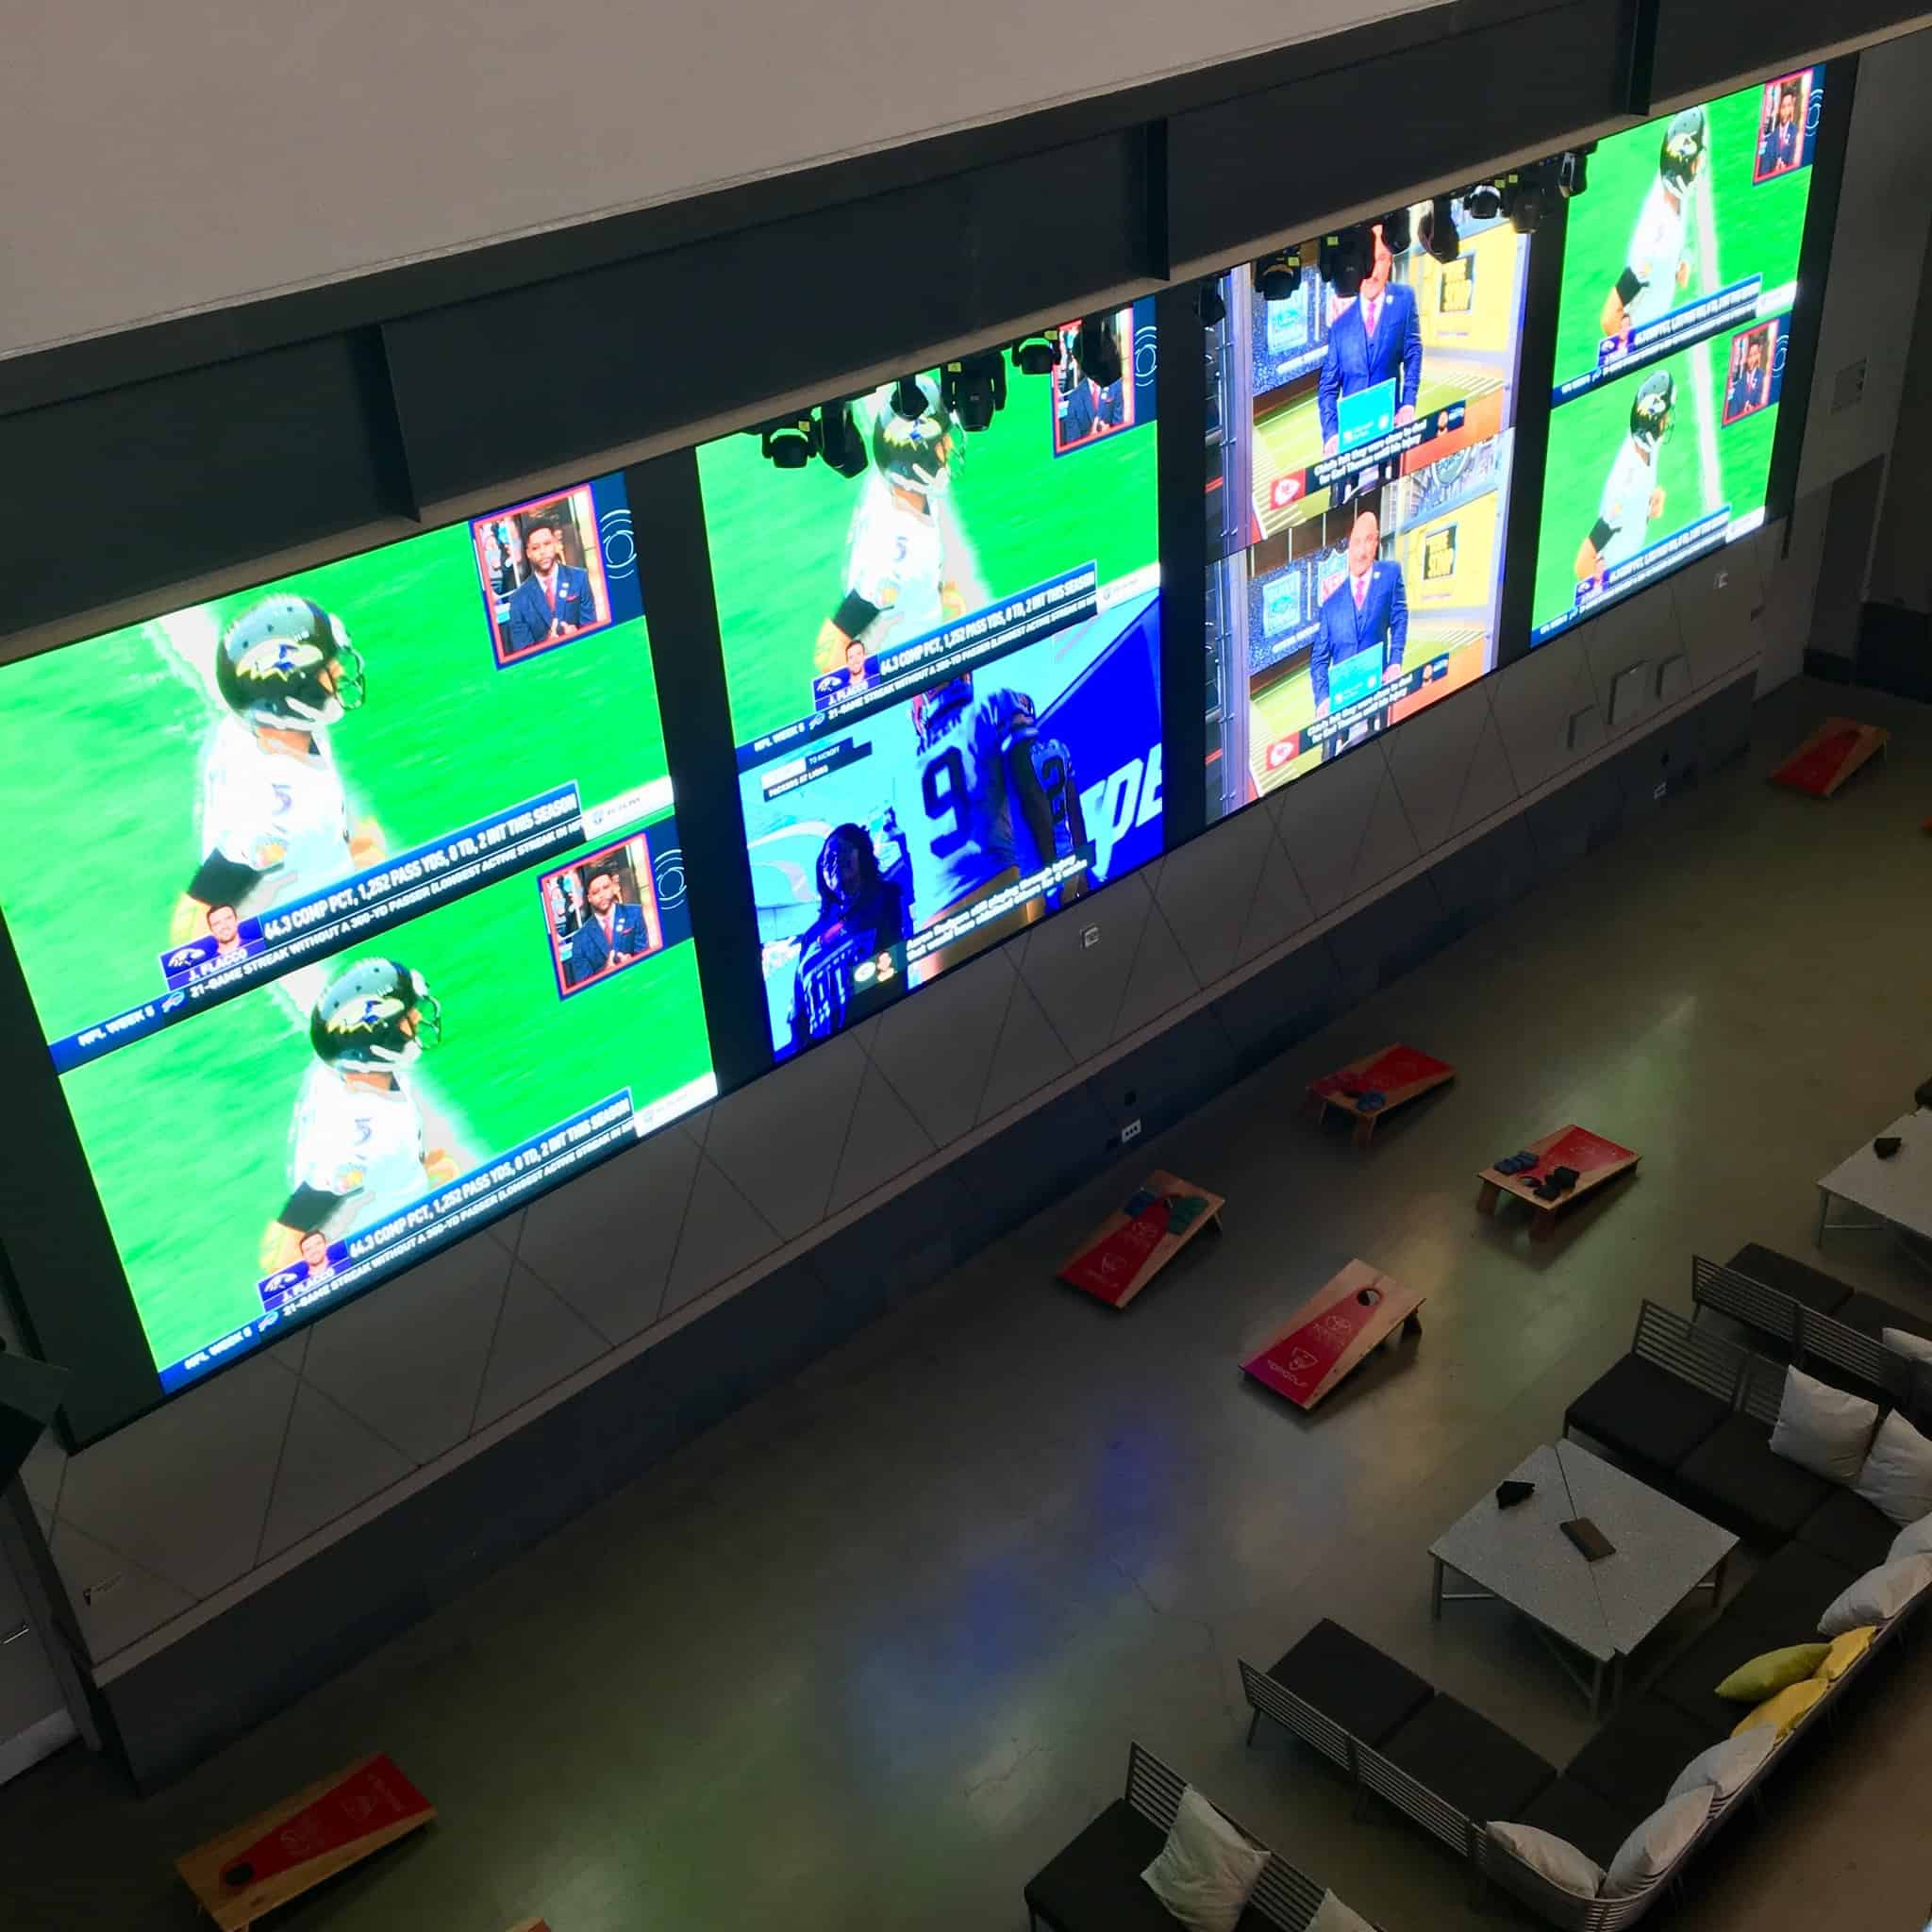 Screens for viewing sports at Topgolf